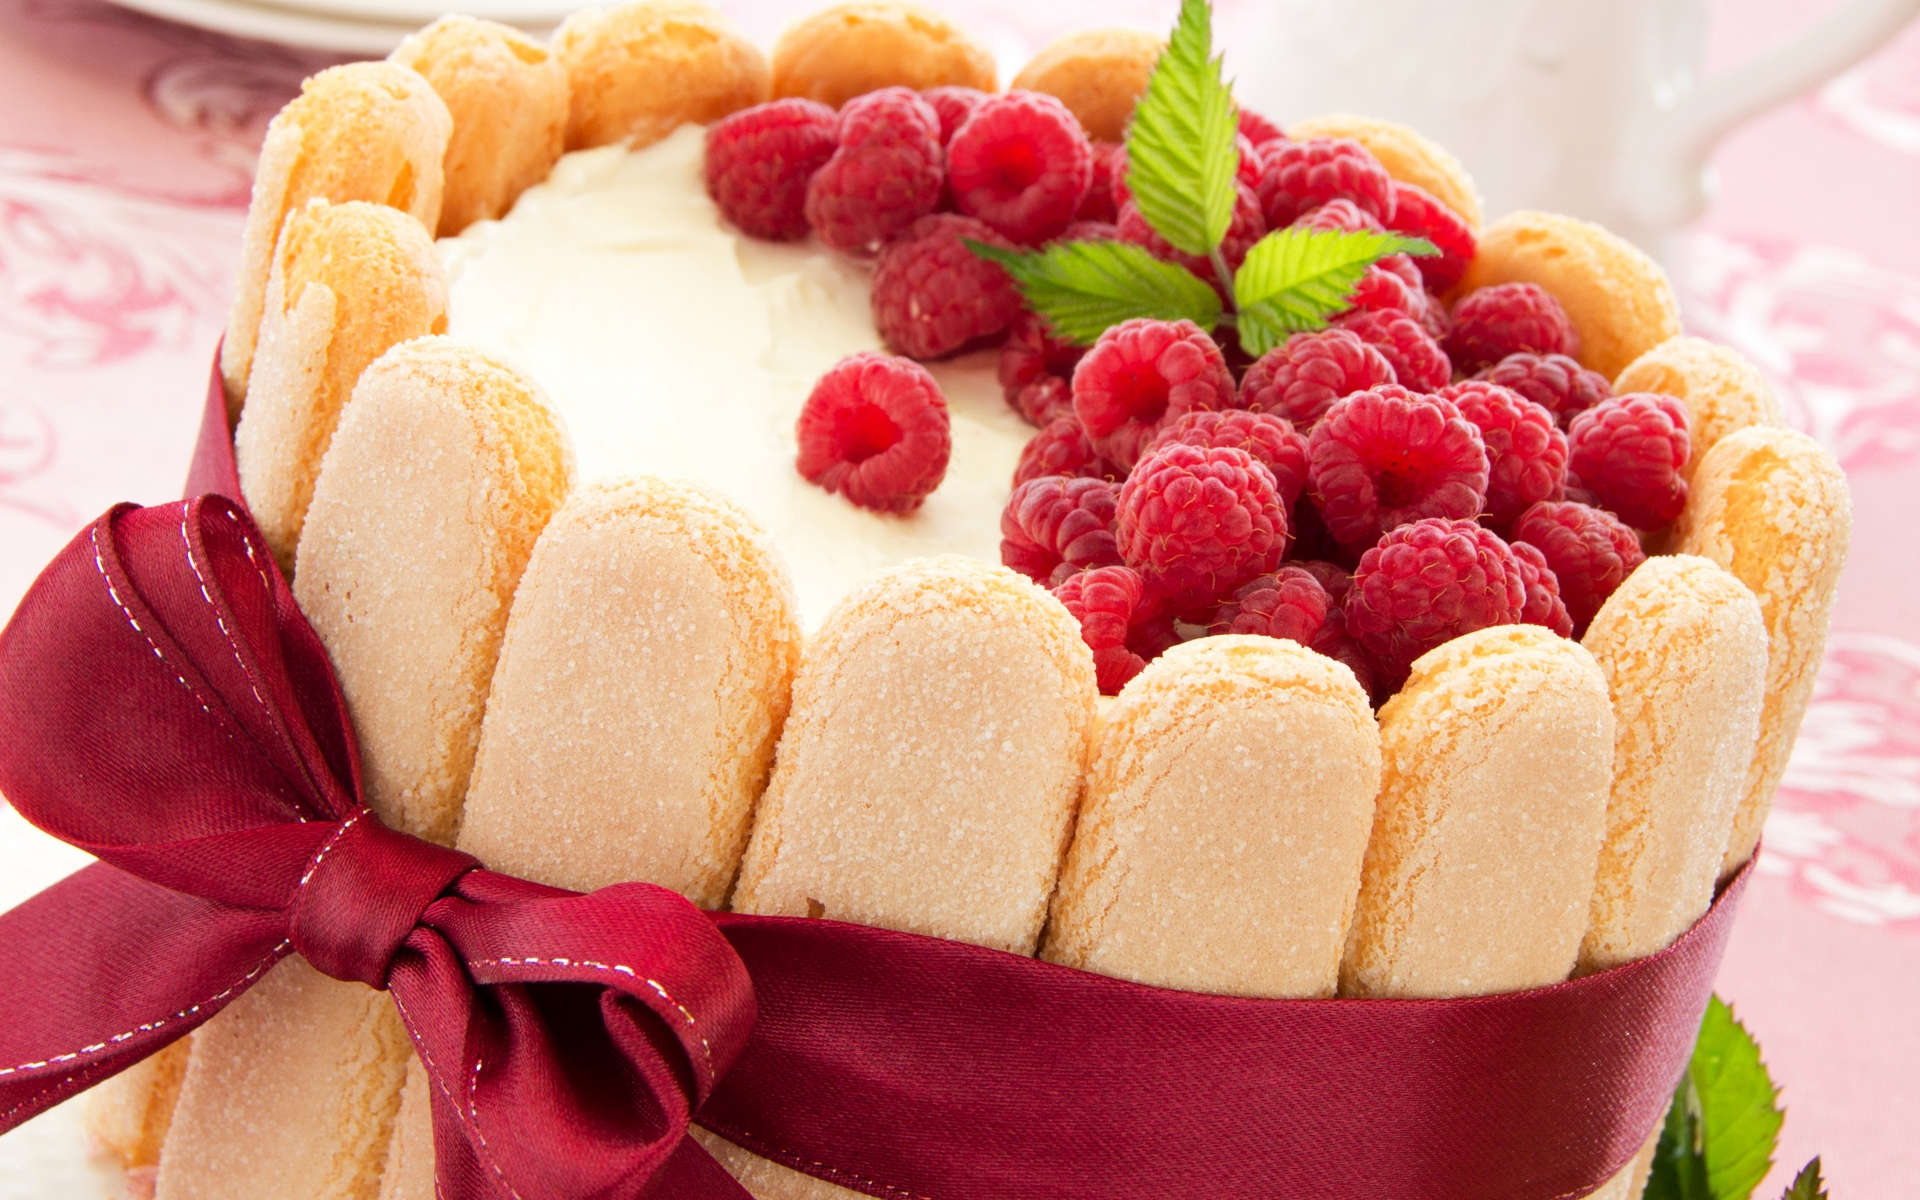 French dessert and pastries workshop